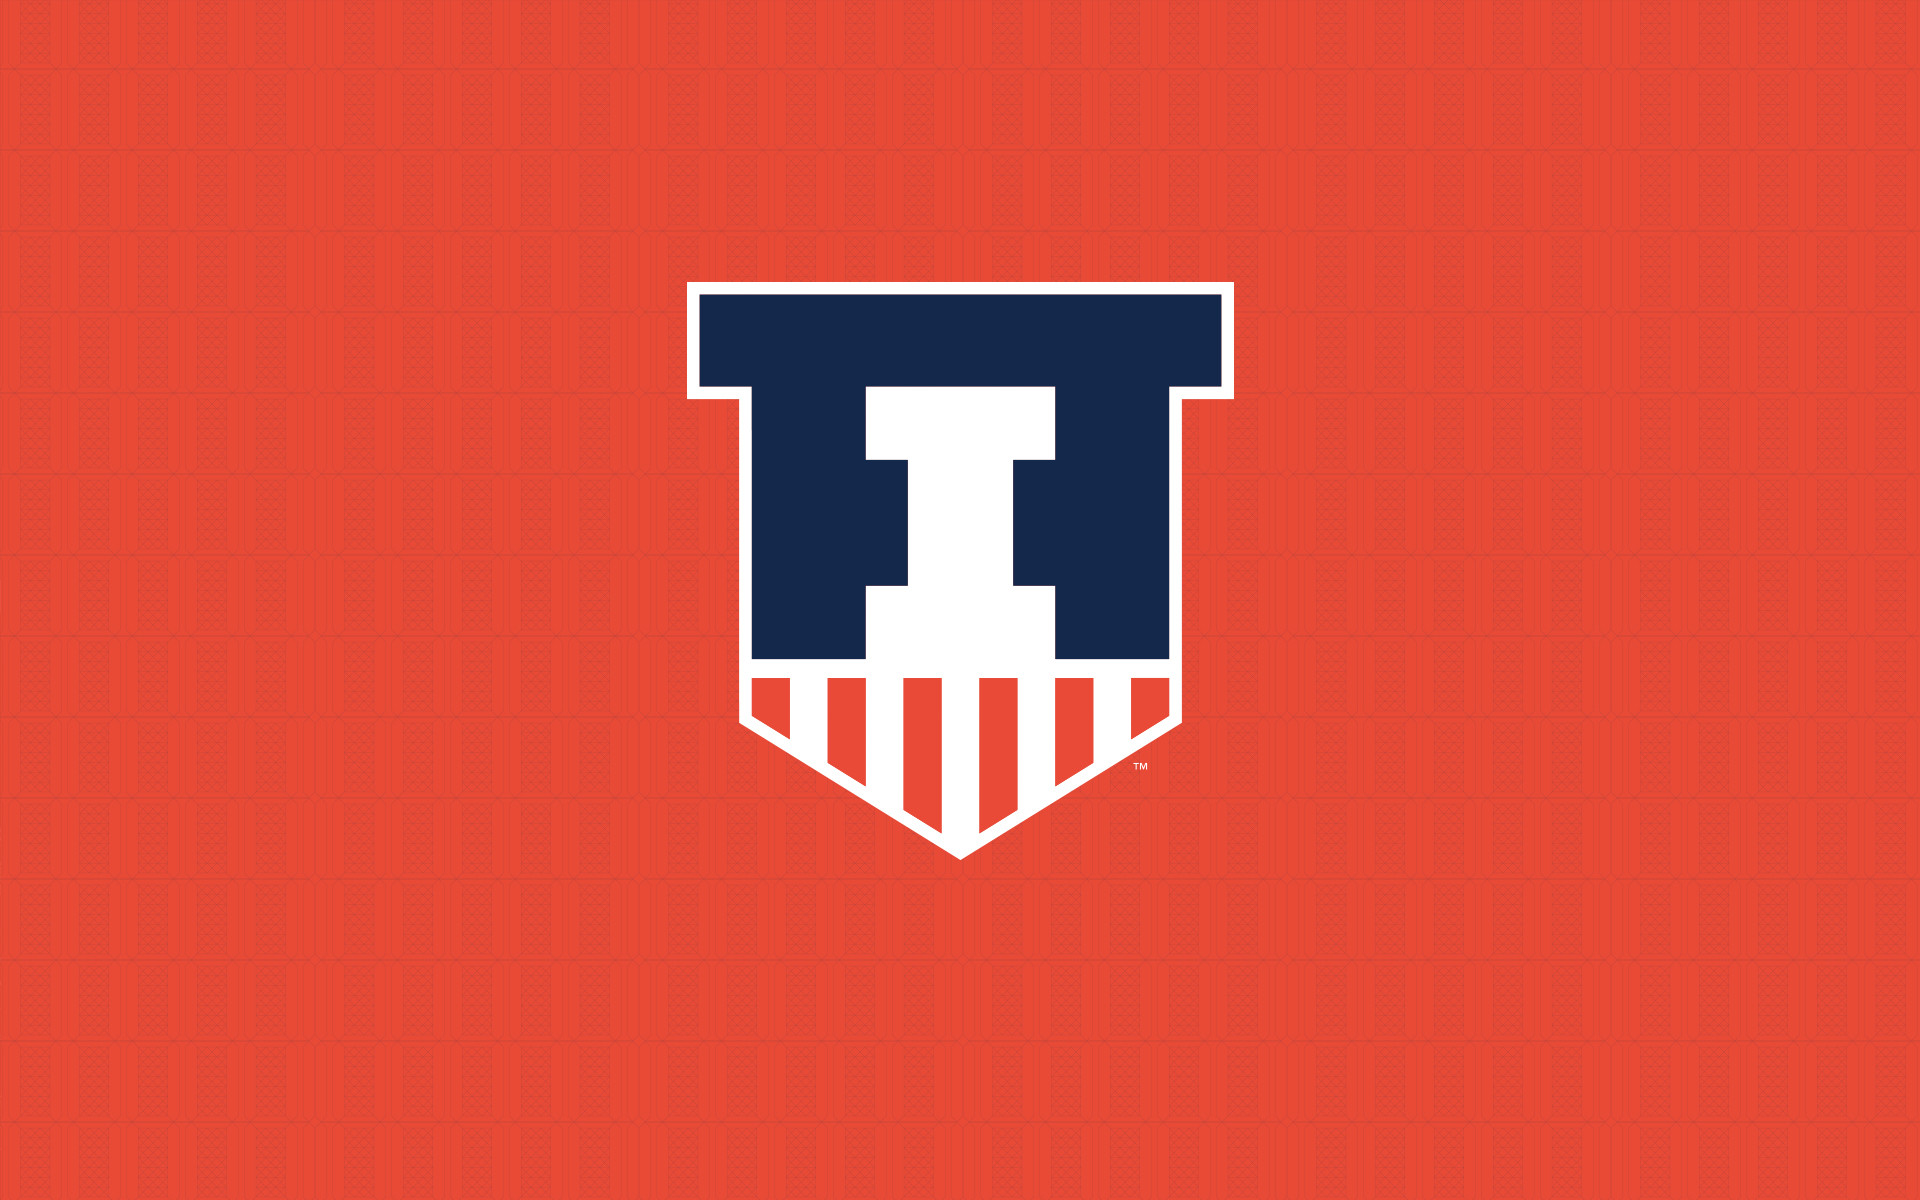 University of Illinois Desktop Wallpaper 70 images 1920x1200